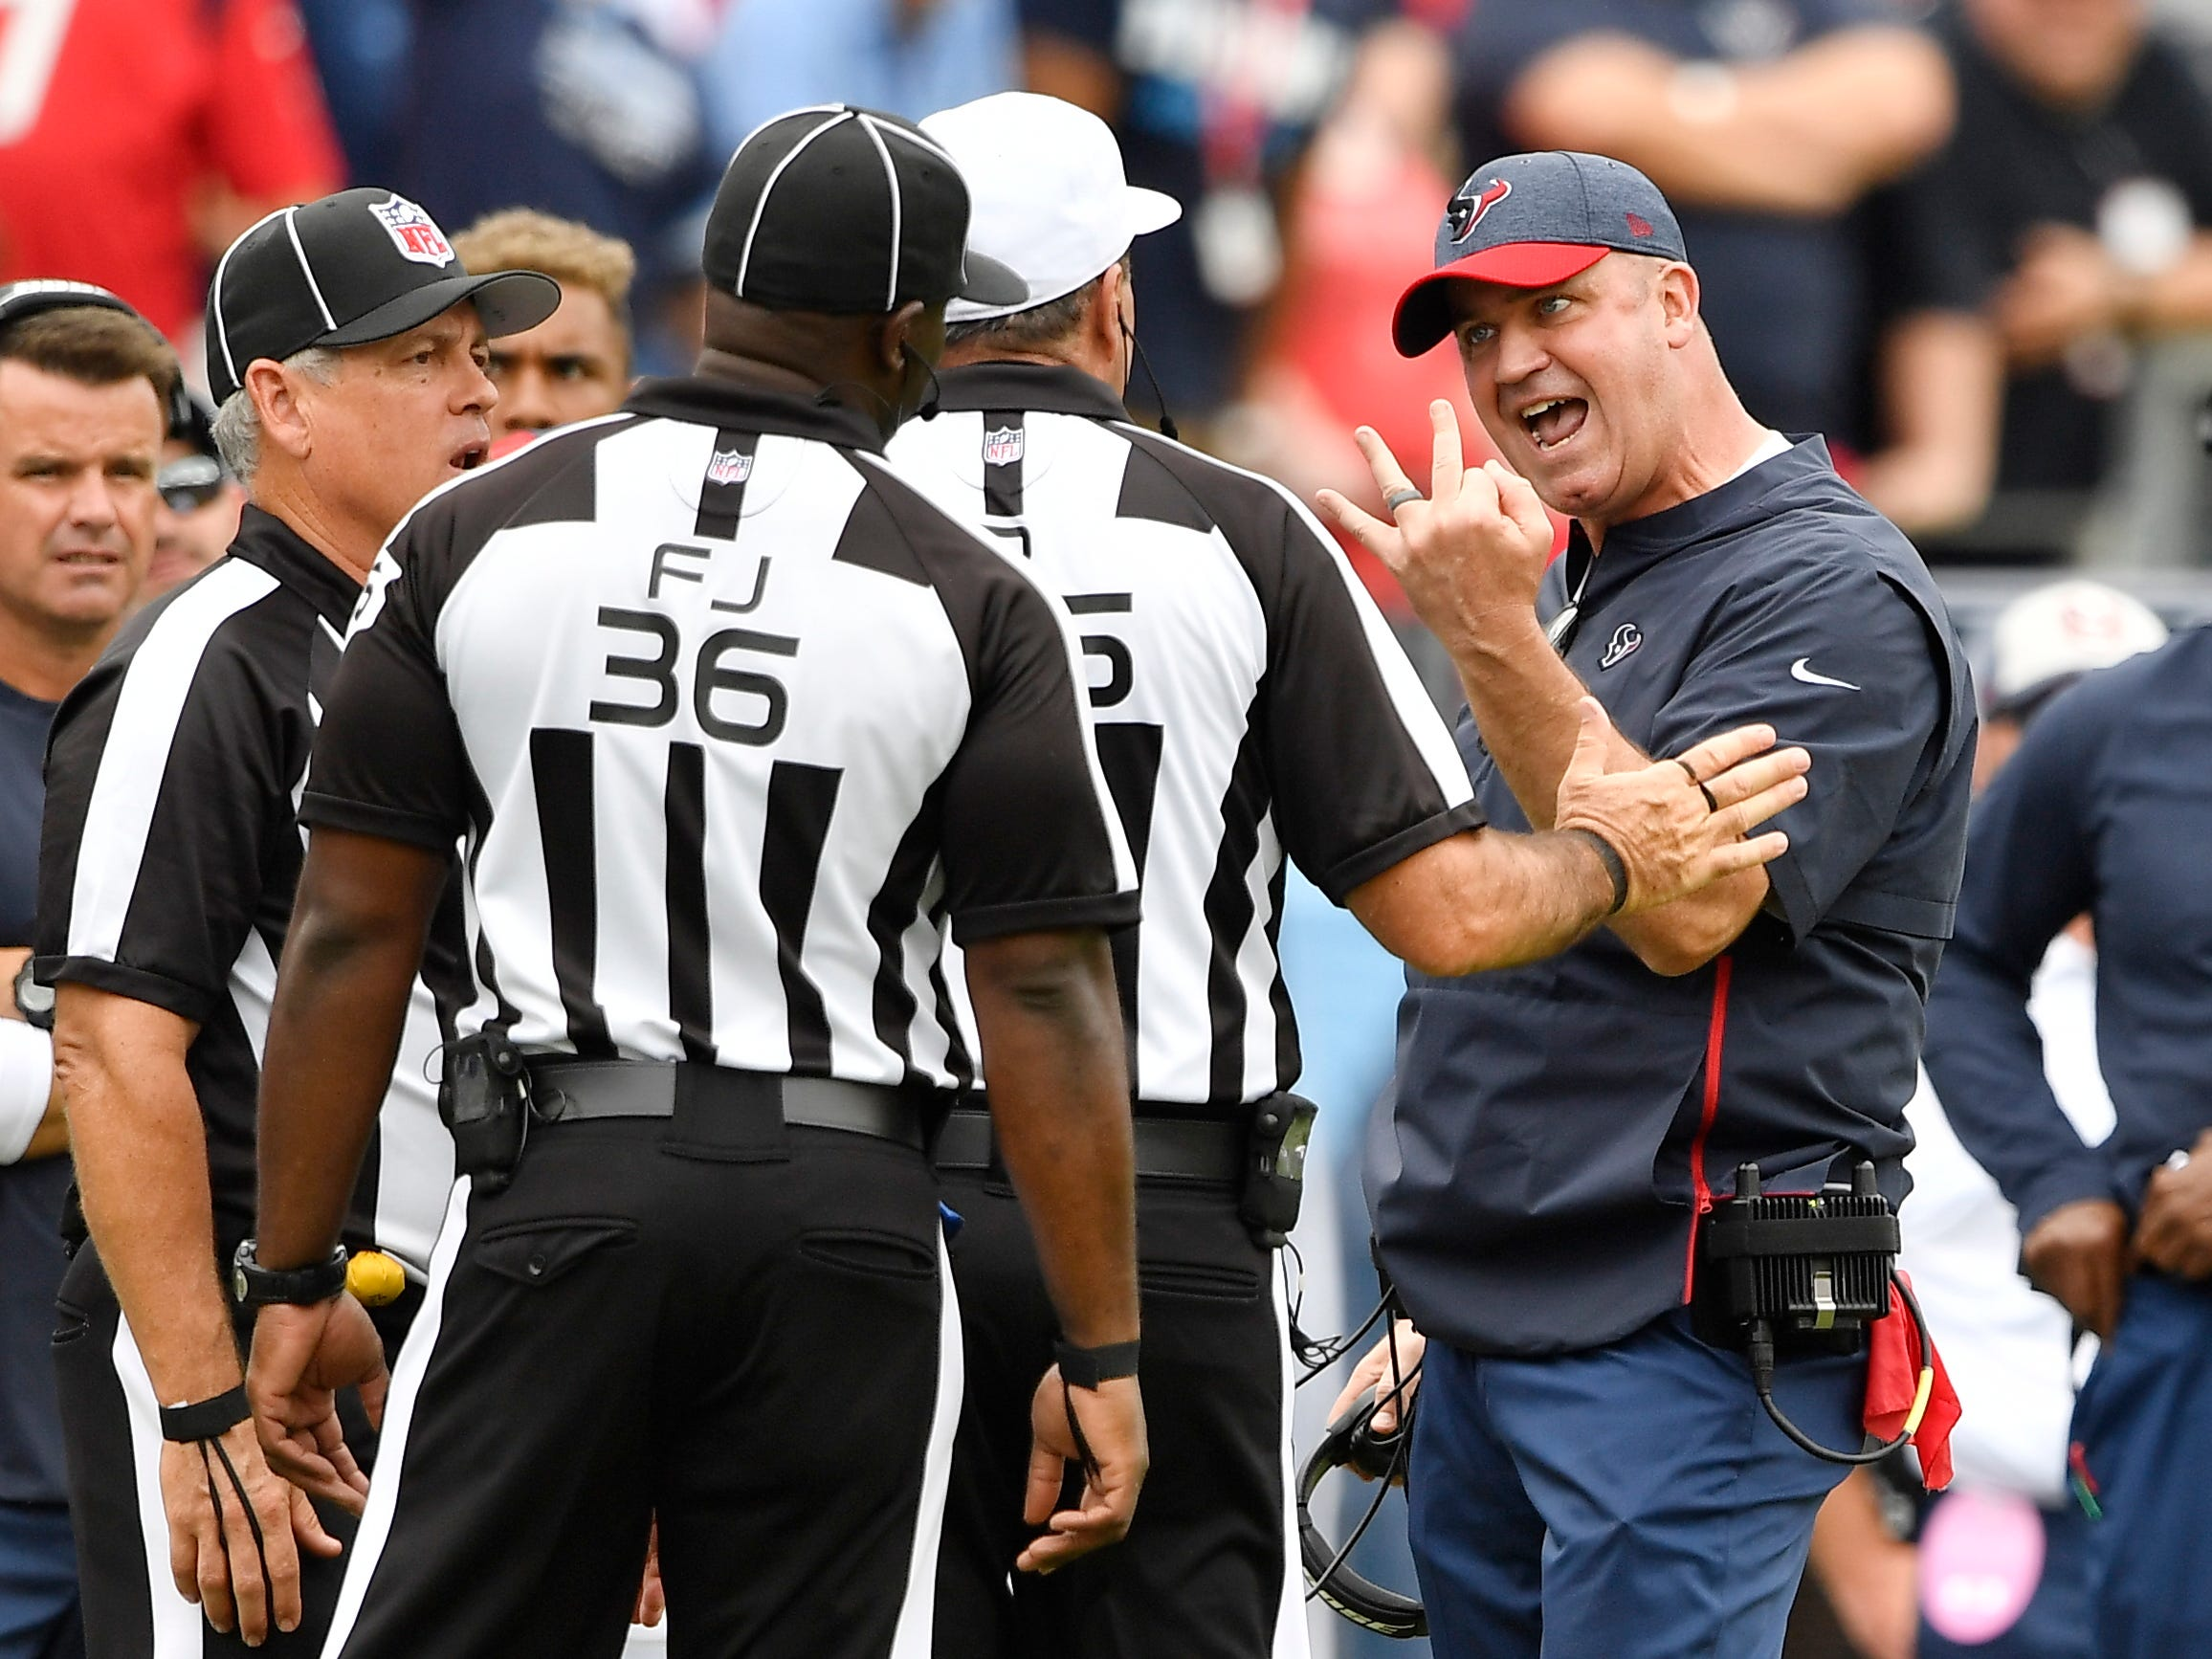 Texans head coach Bill O'Brien argues the call late in the second half at Nissan Stadium Sunday, Sept. 16, 2018, in Nashville, Tenn.